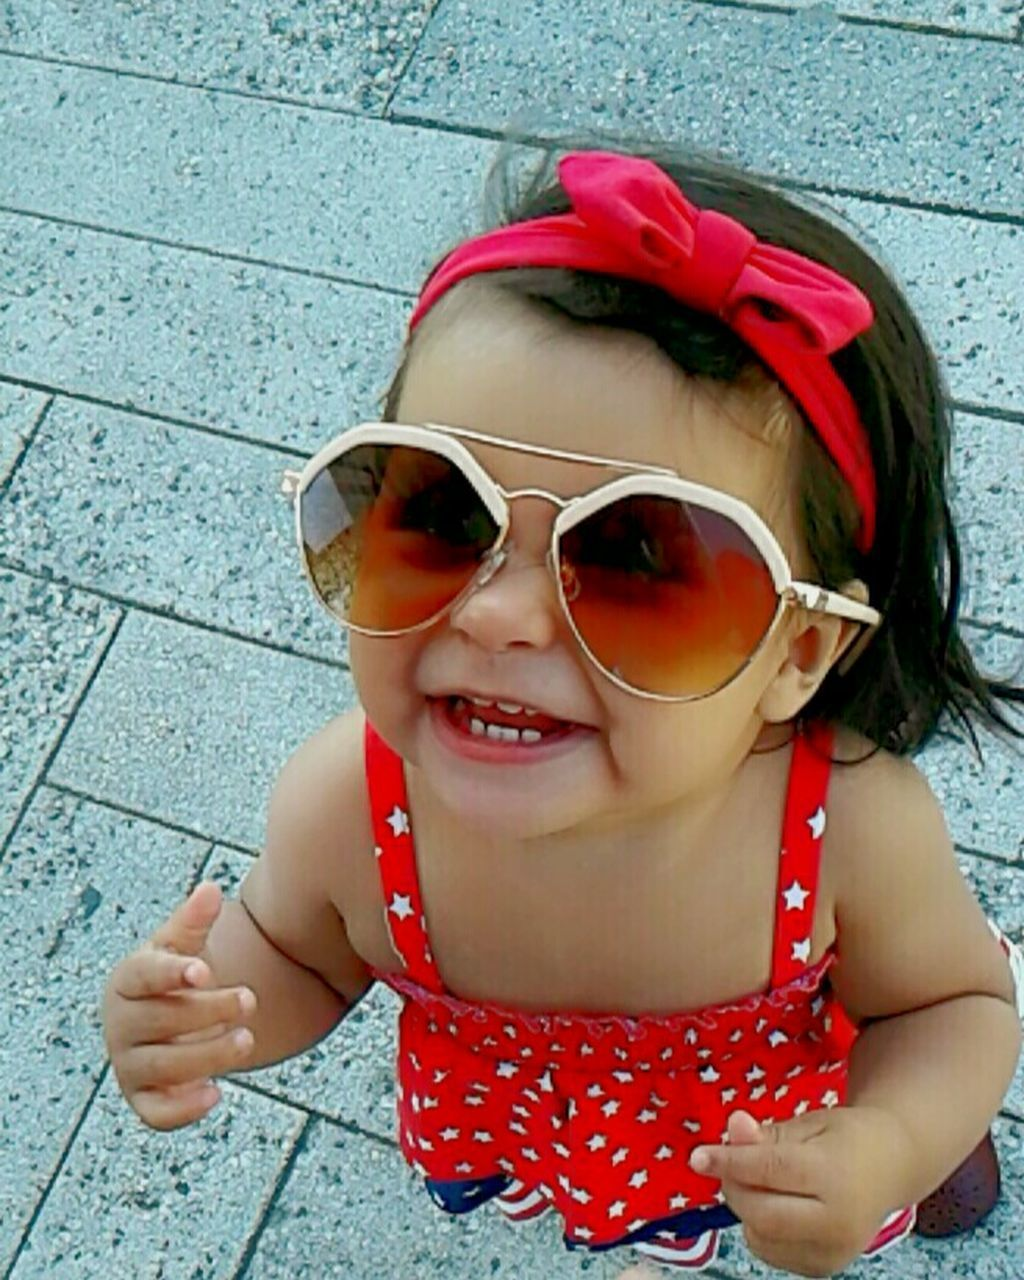 childhood, sunglasses, one person, girls, outdoors, real people, day, elementary age, portrait, looking at camera, lifestyles, child, people